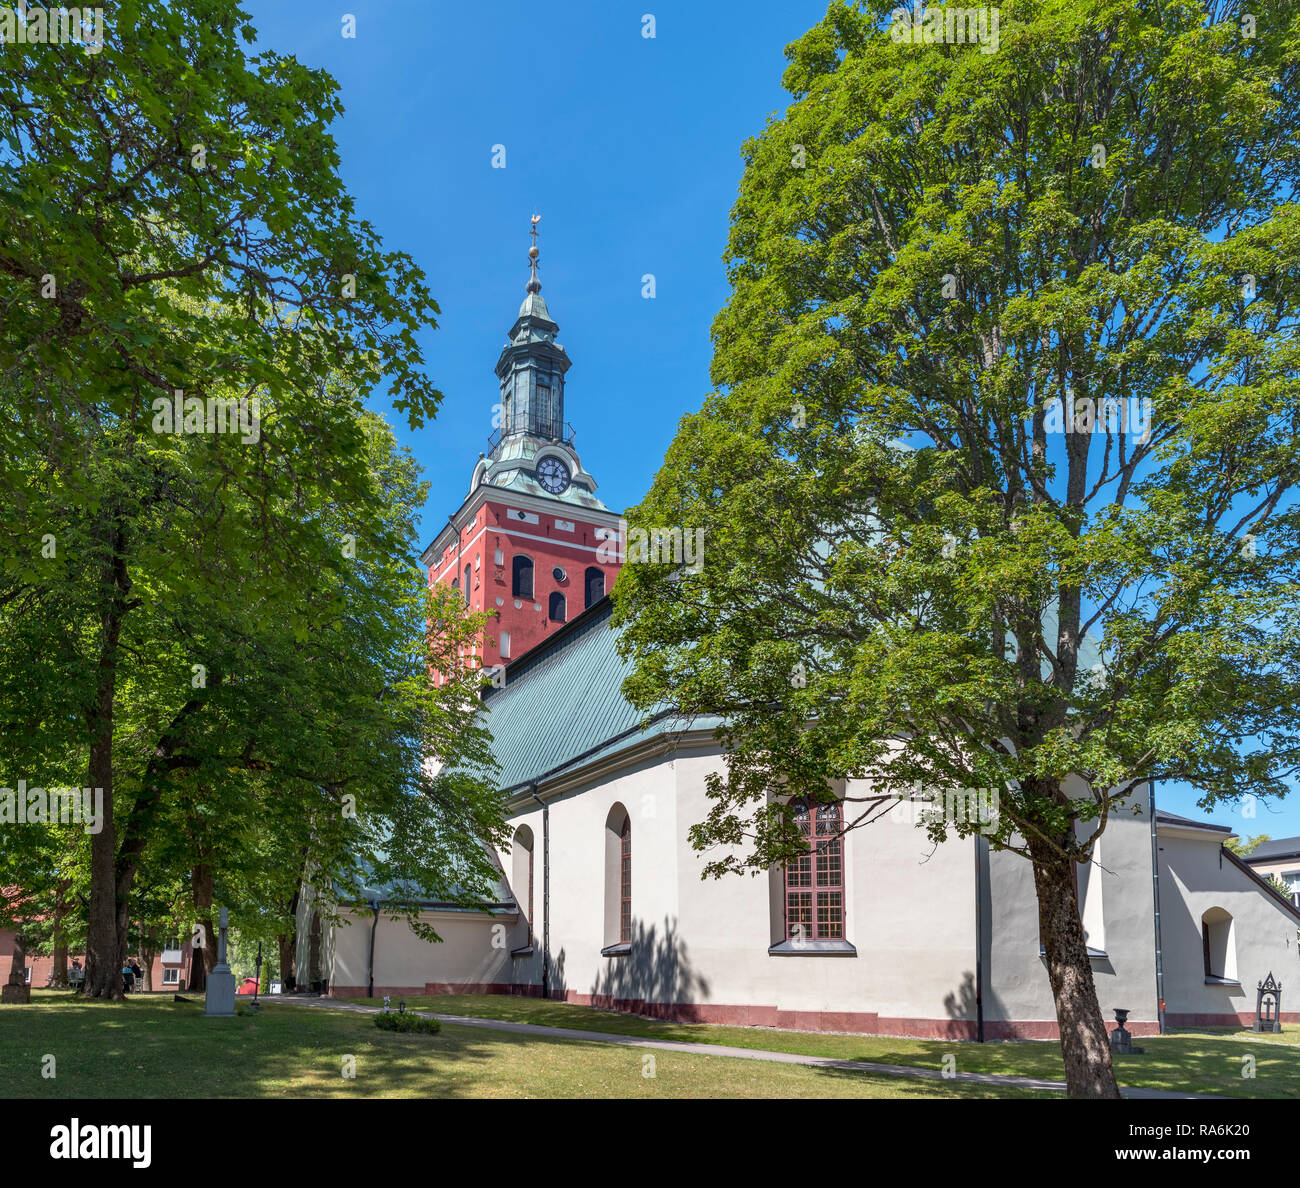 The 17th century Kristina kyrka in Sala, Västmanland, Sweden - Stock Image